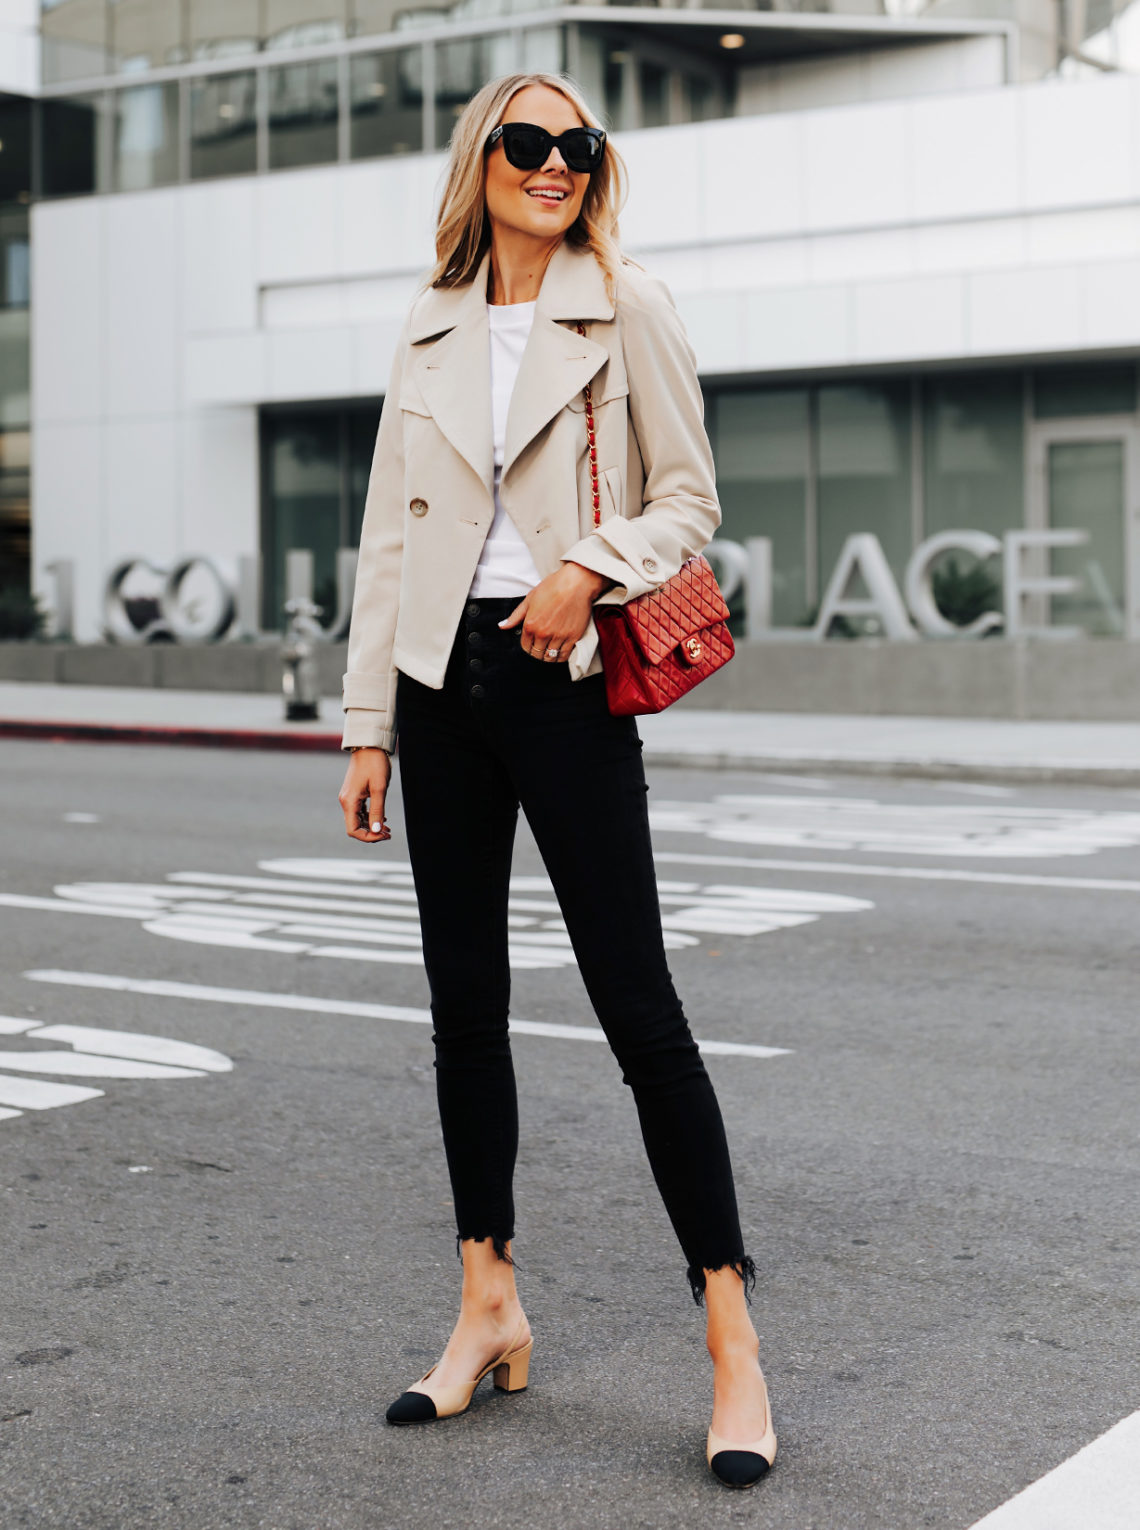 Fashion Jackson Ann Taylor Cropped Trench Coat Black Raw Hem Skinny Jeans Chanel Slingbacks Chanel Red Handbag Featured Image